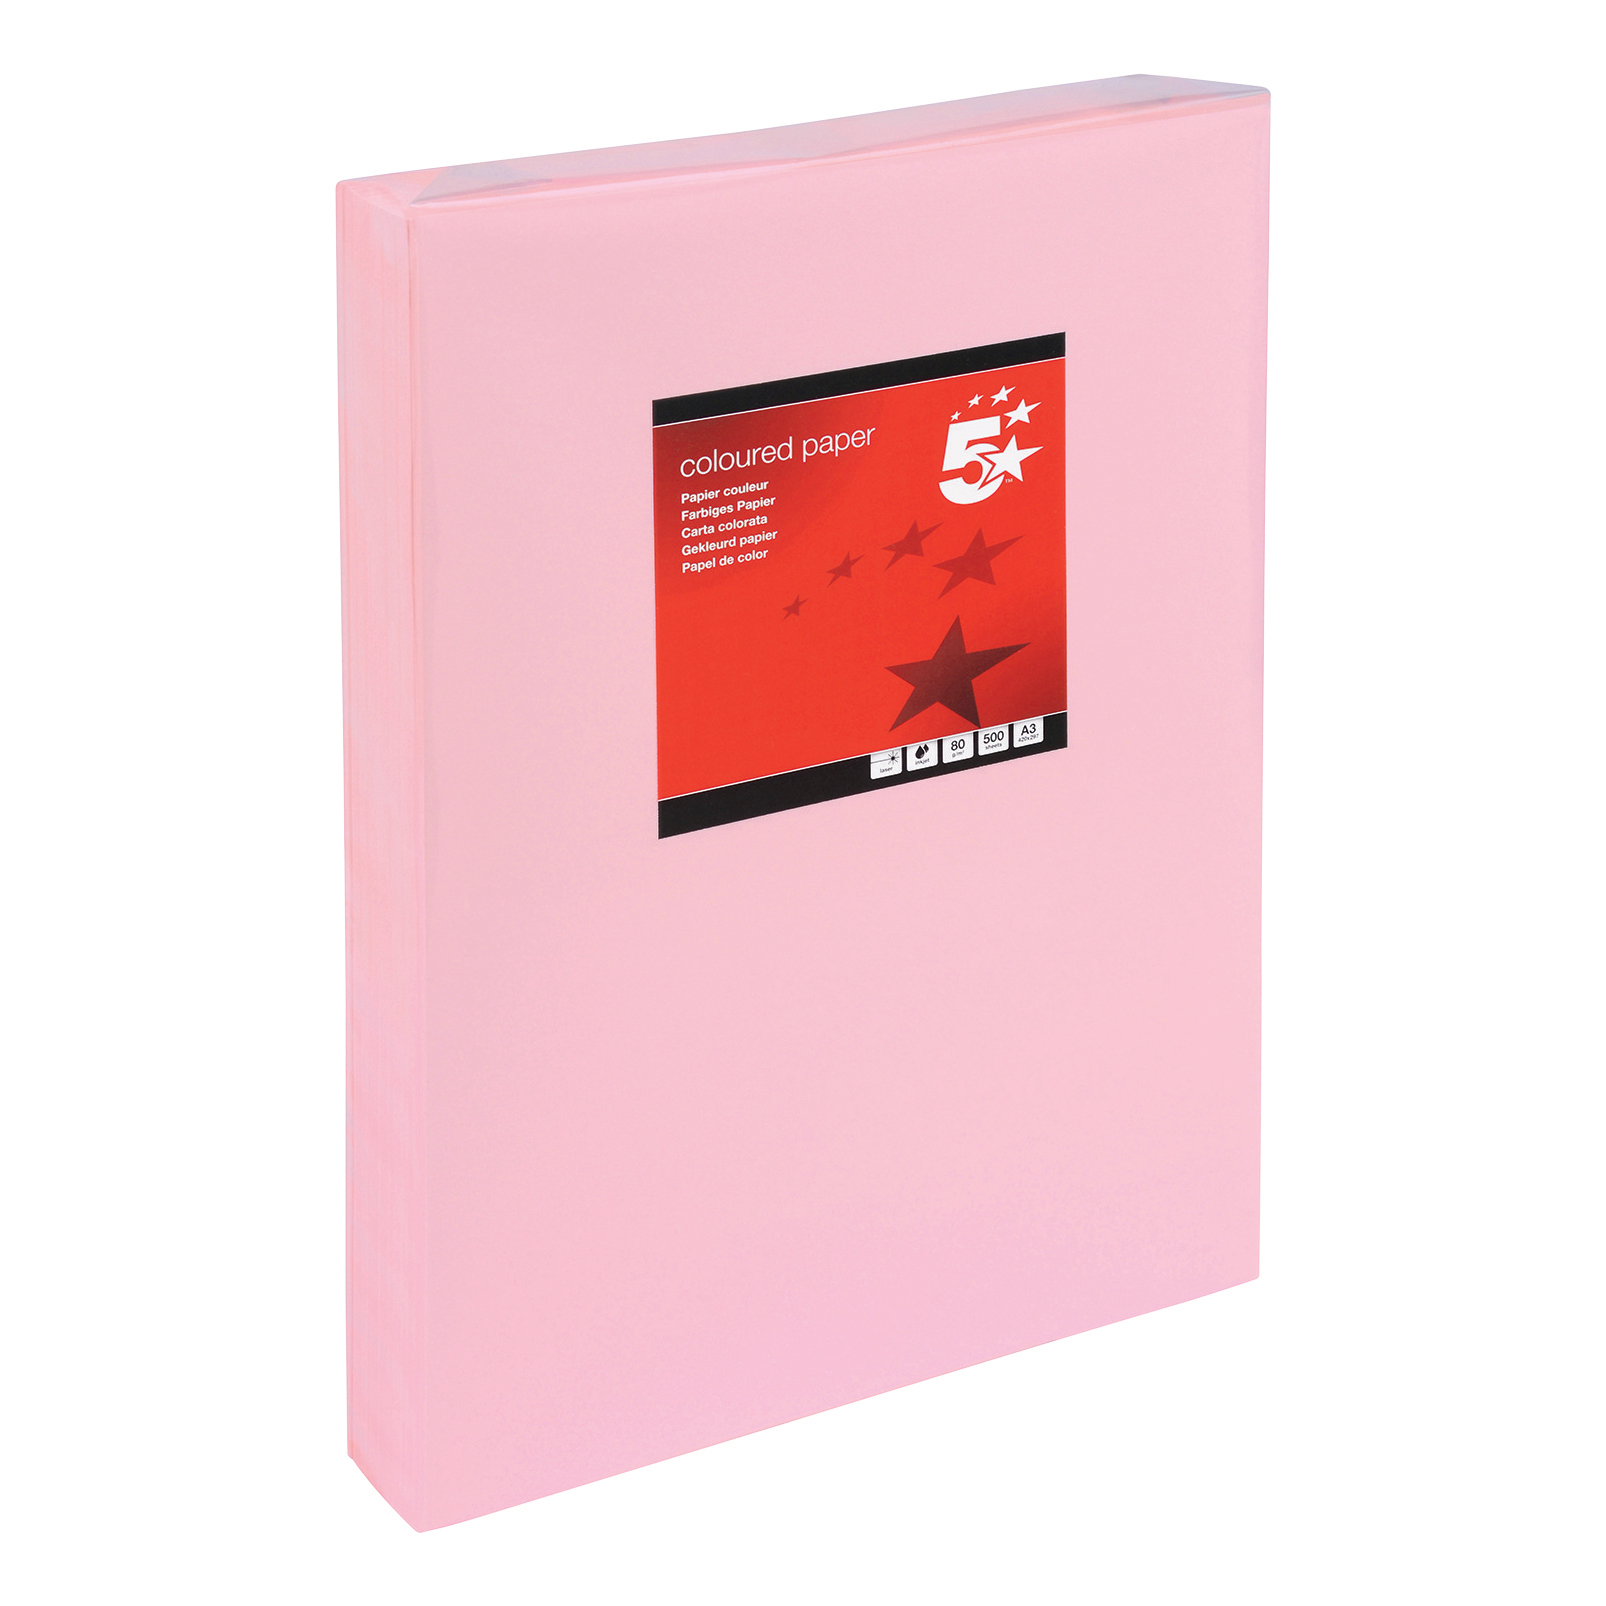 5 Star Office Coloured Copier Paper Multifunctional Ream-Wrapped 80gsm A3 Light Pink 500 Sheets